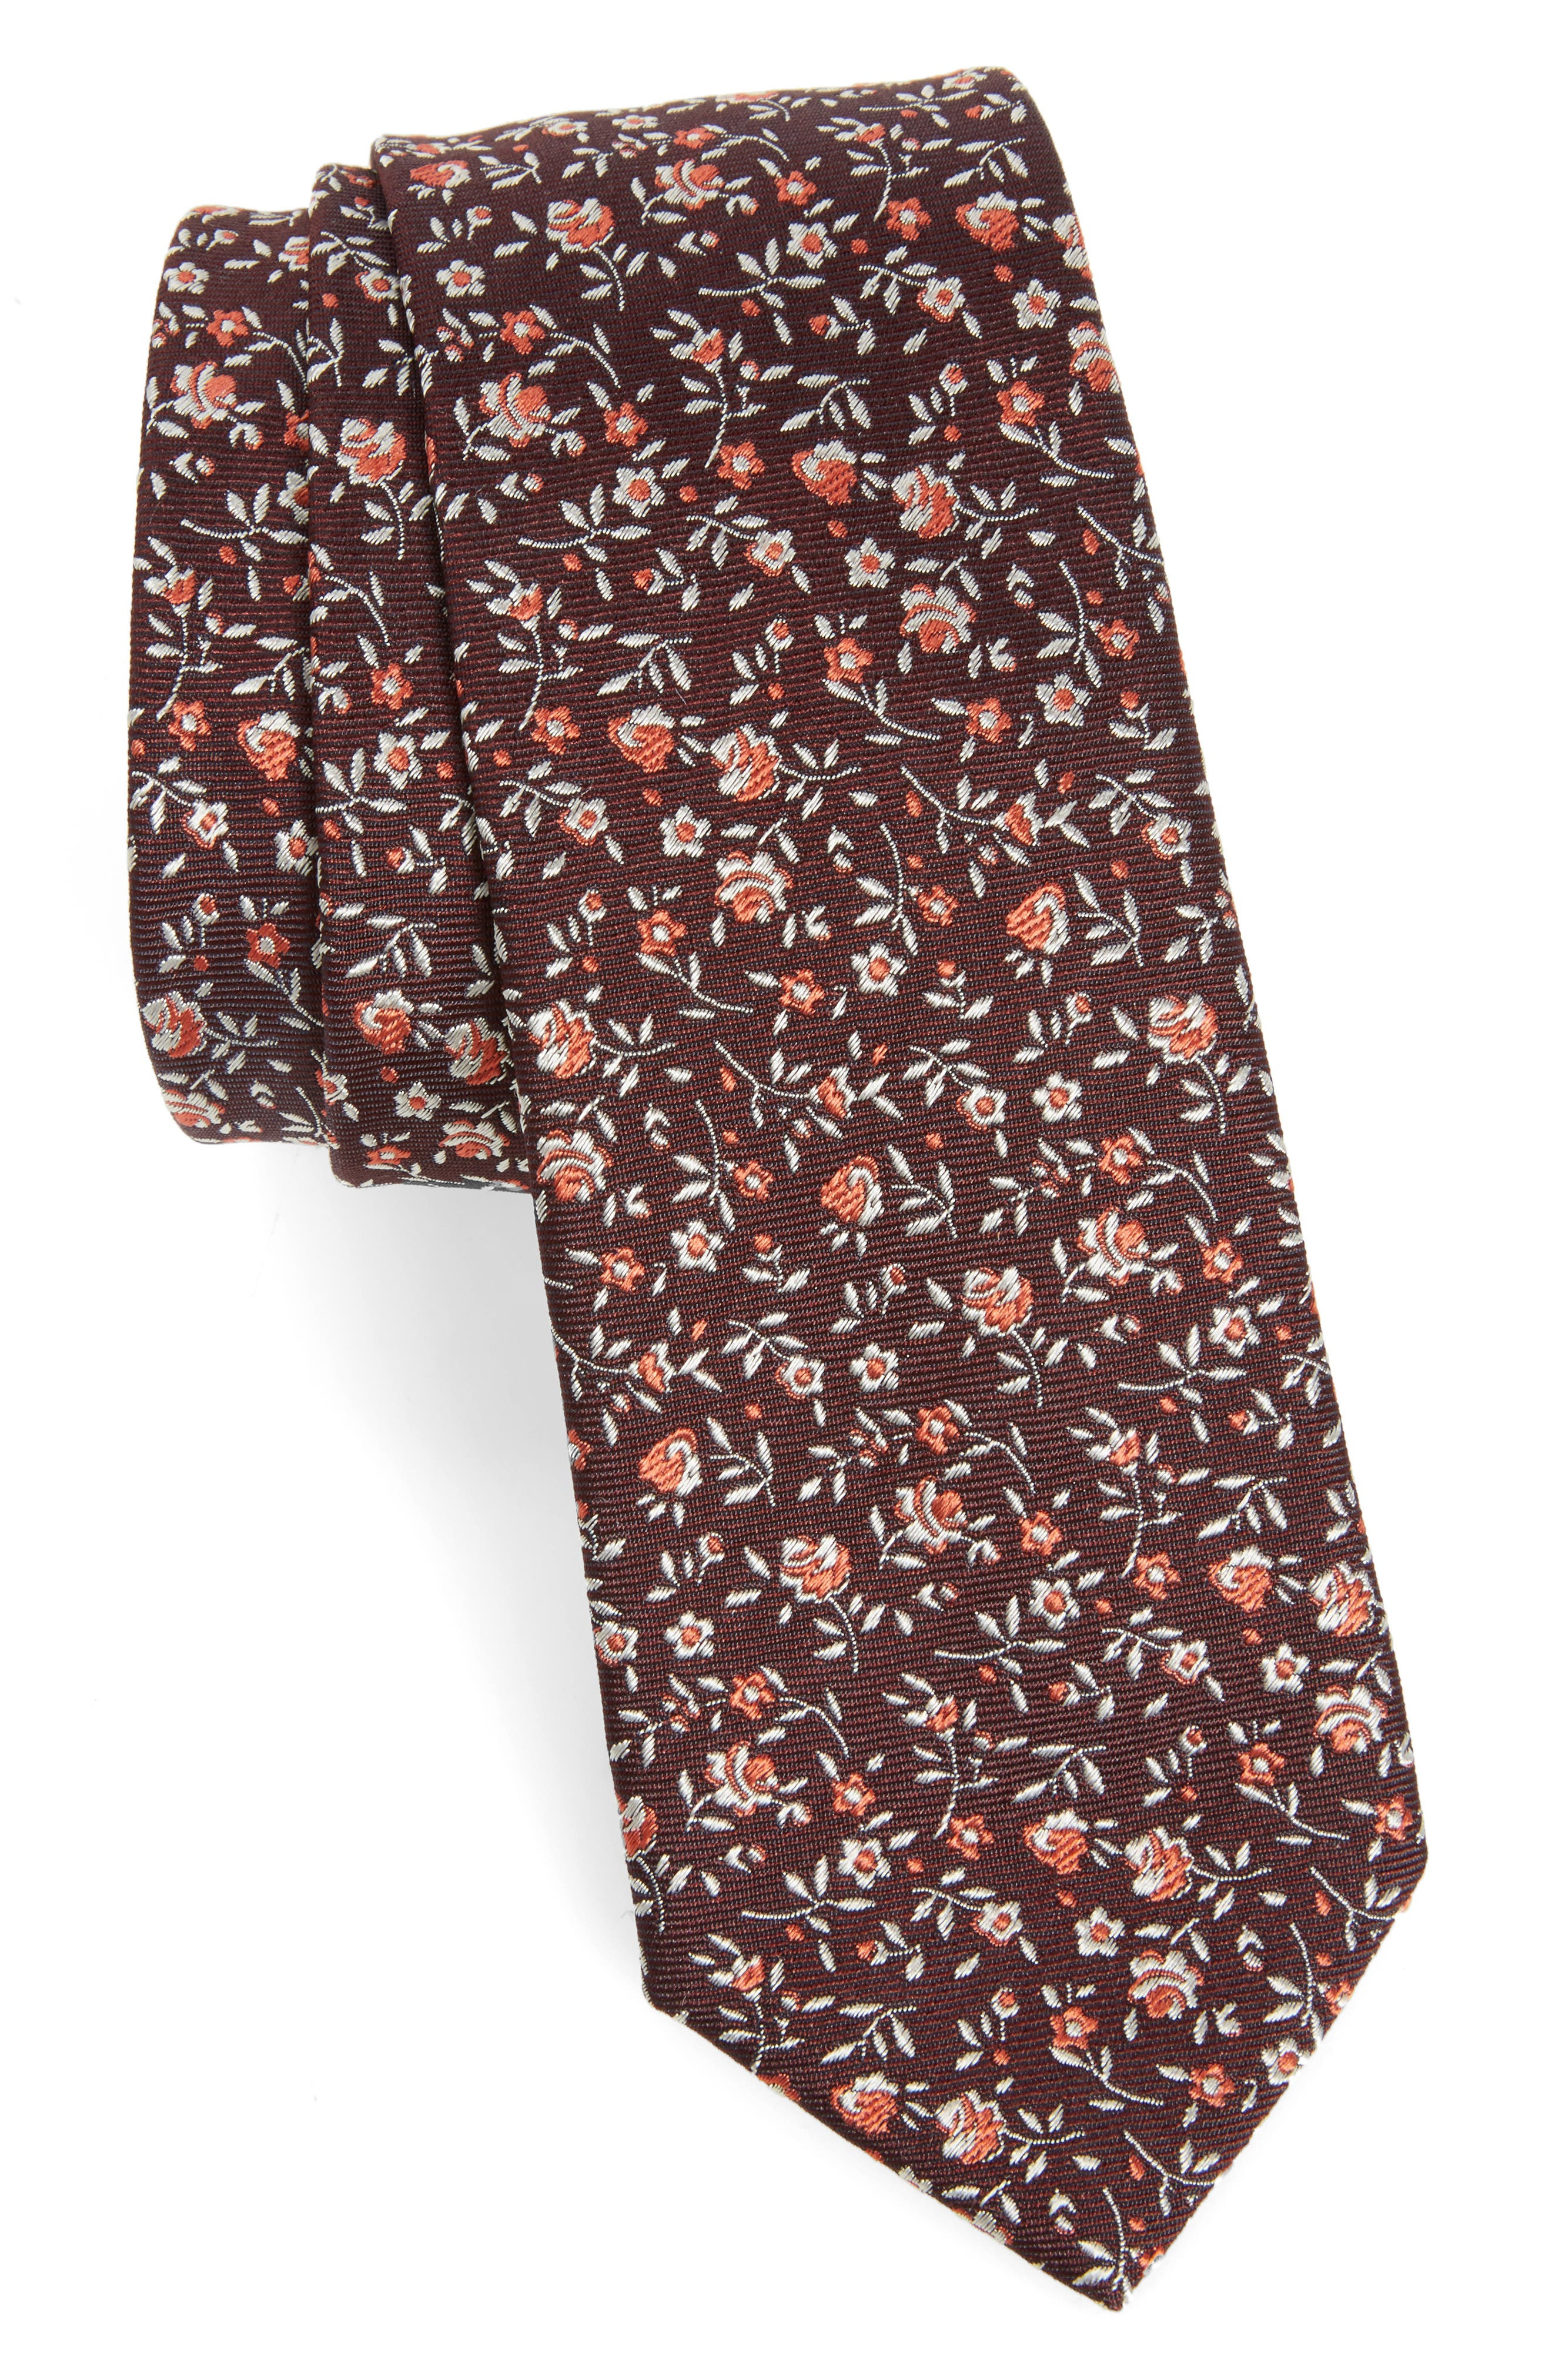 Alternate Image 1 Selected - Paul Smith Floral Silk Skinny Tie